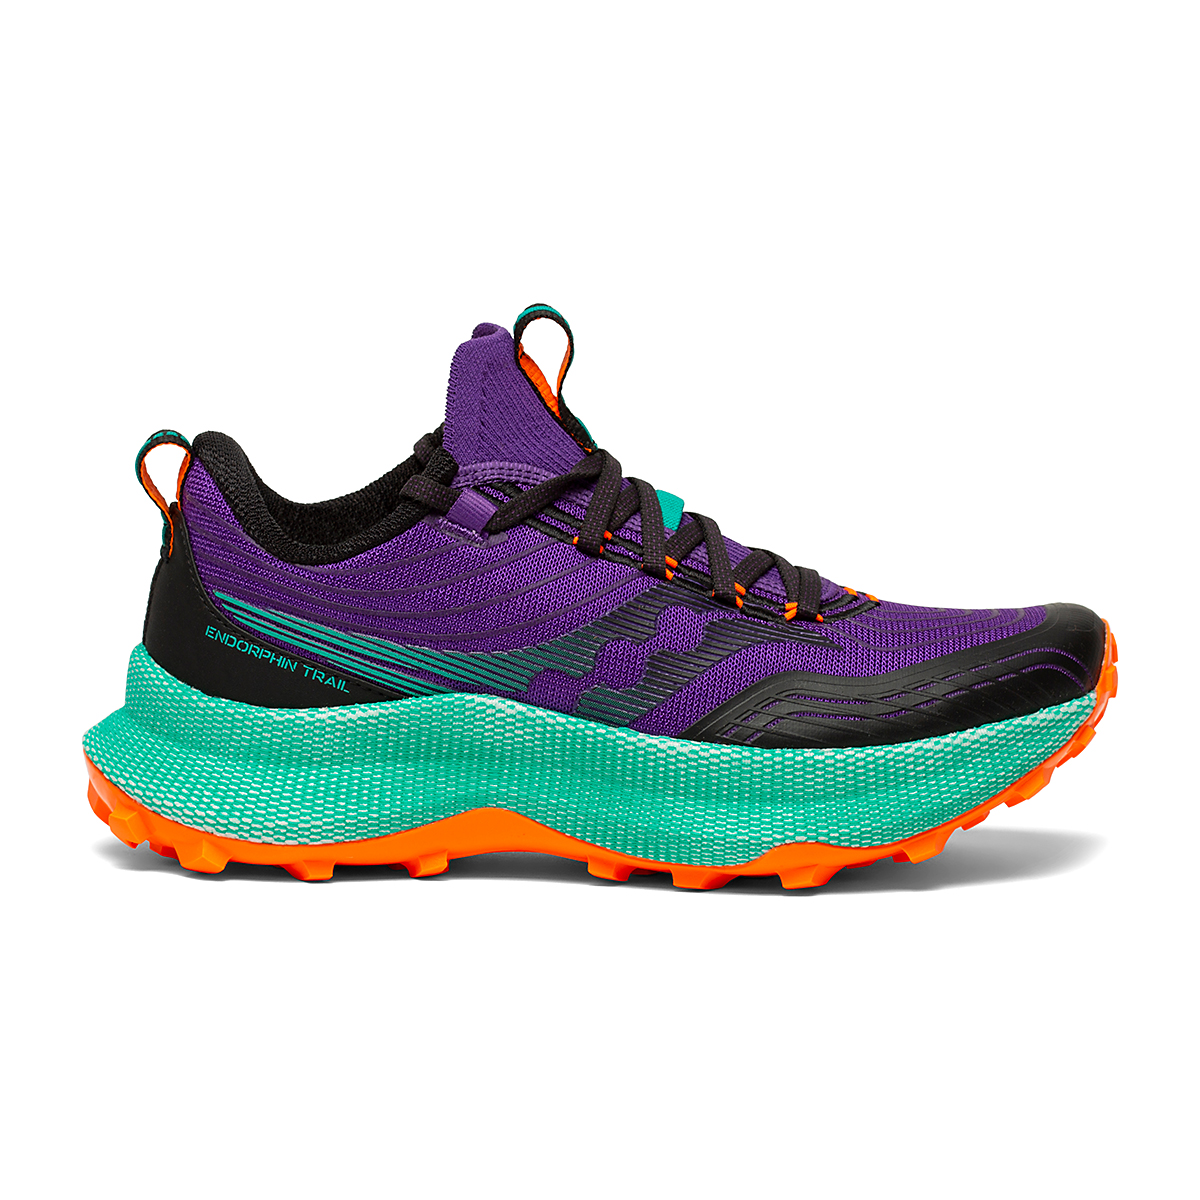 Women's Saucony Endorphin Trail Running Shoe - Color: Concord / Jade - Size: 5 - Width: Regular, Concord / Jade, large, image 1